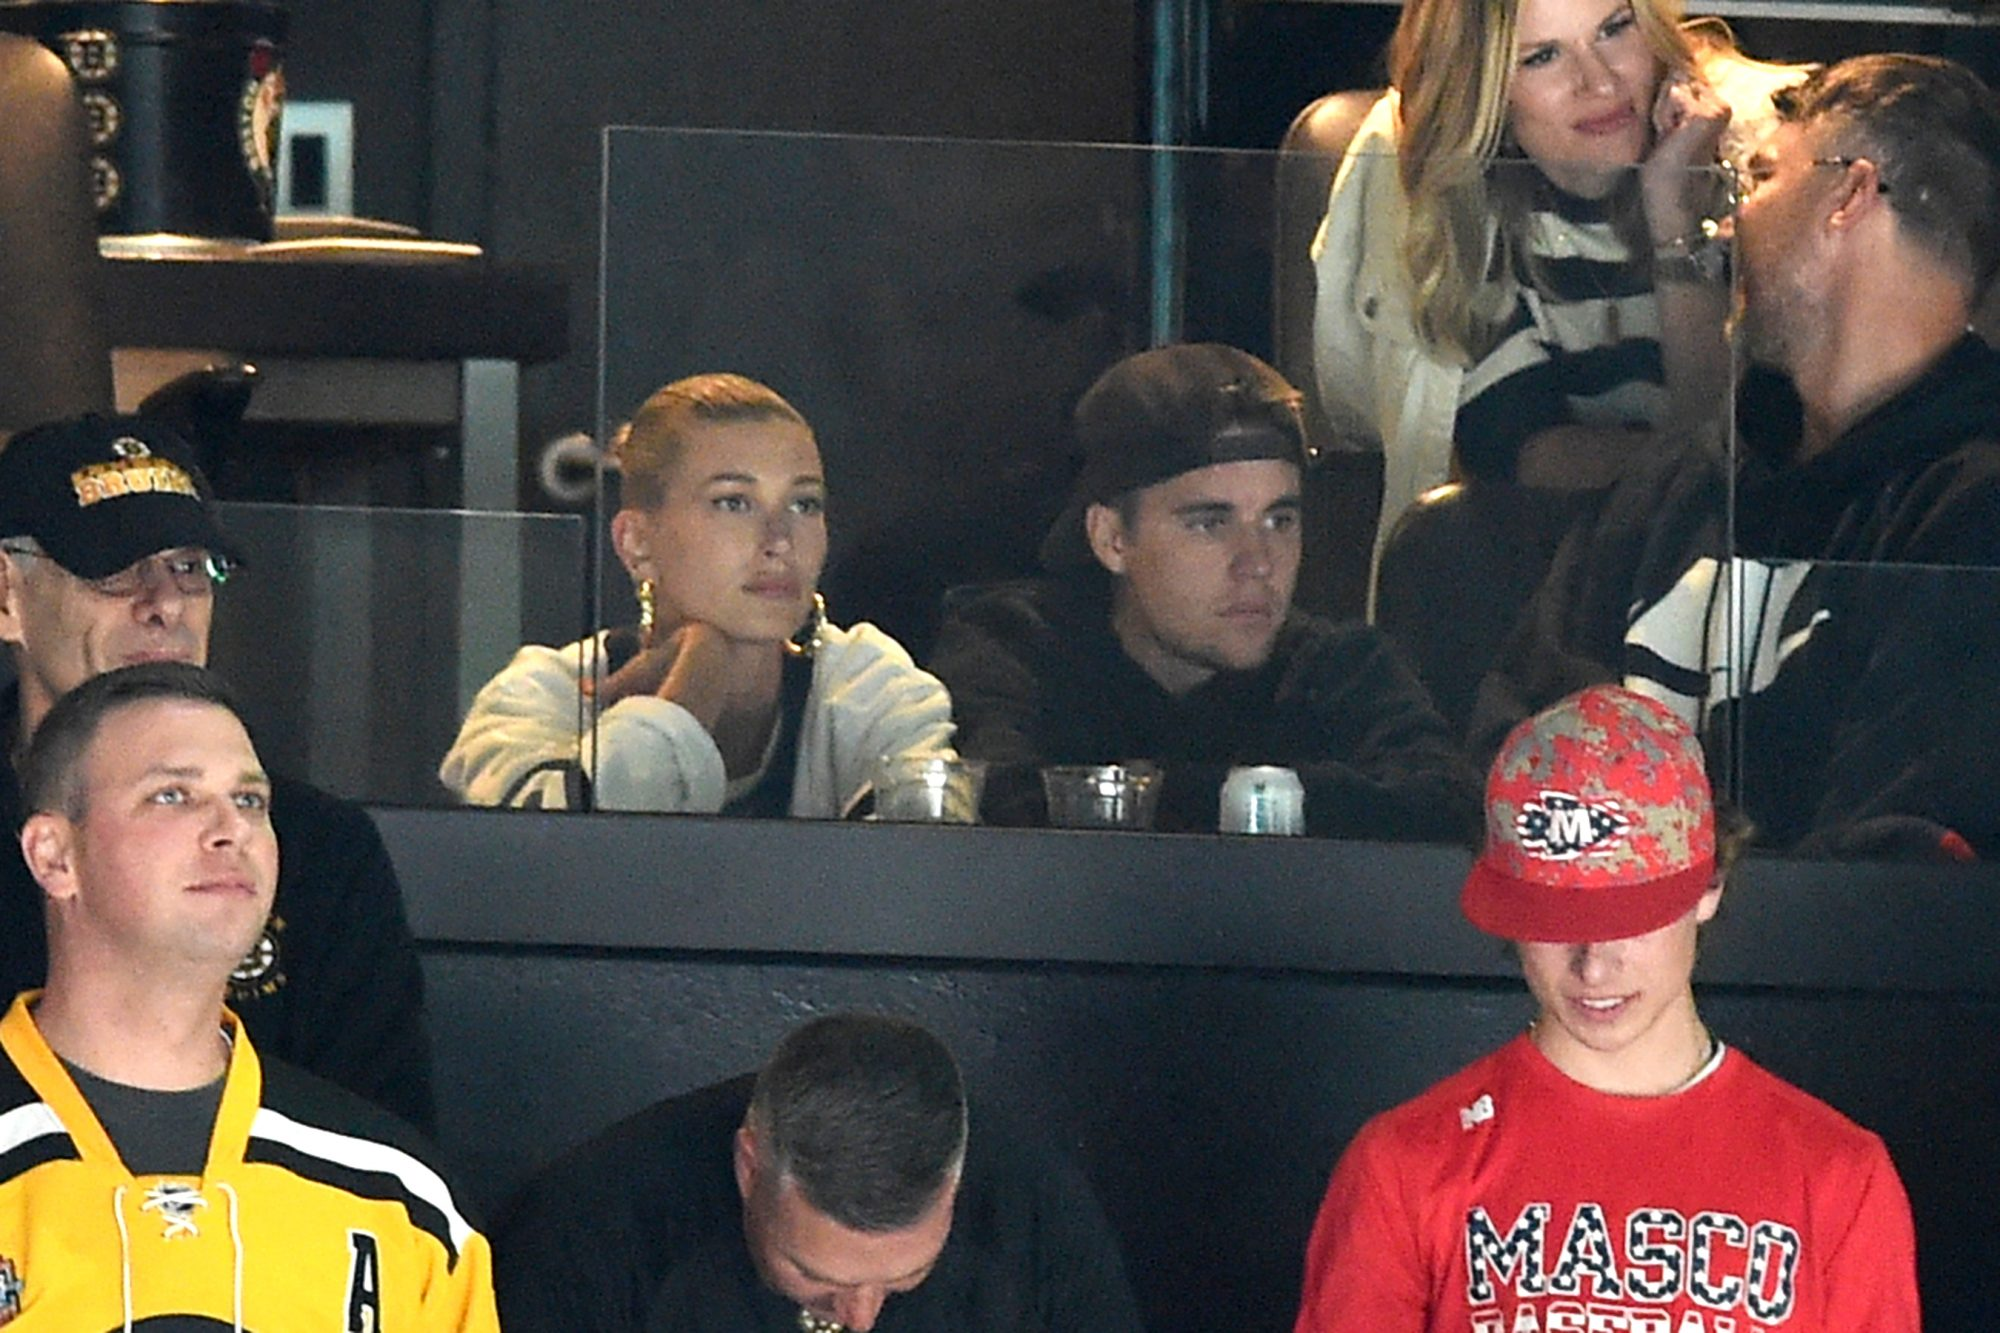 Hailey and Justin Bieber watch the game of the Boston Bruins against the Toronto Maple Leafs